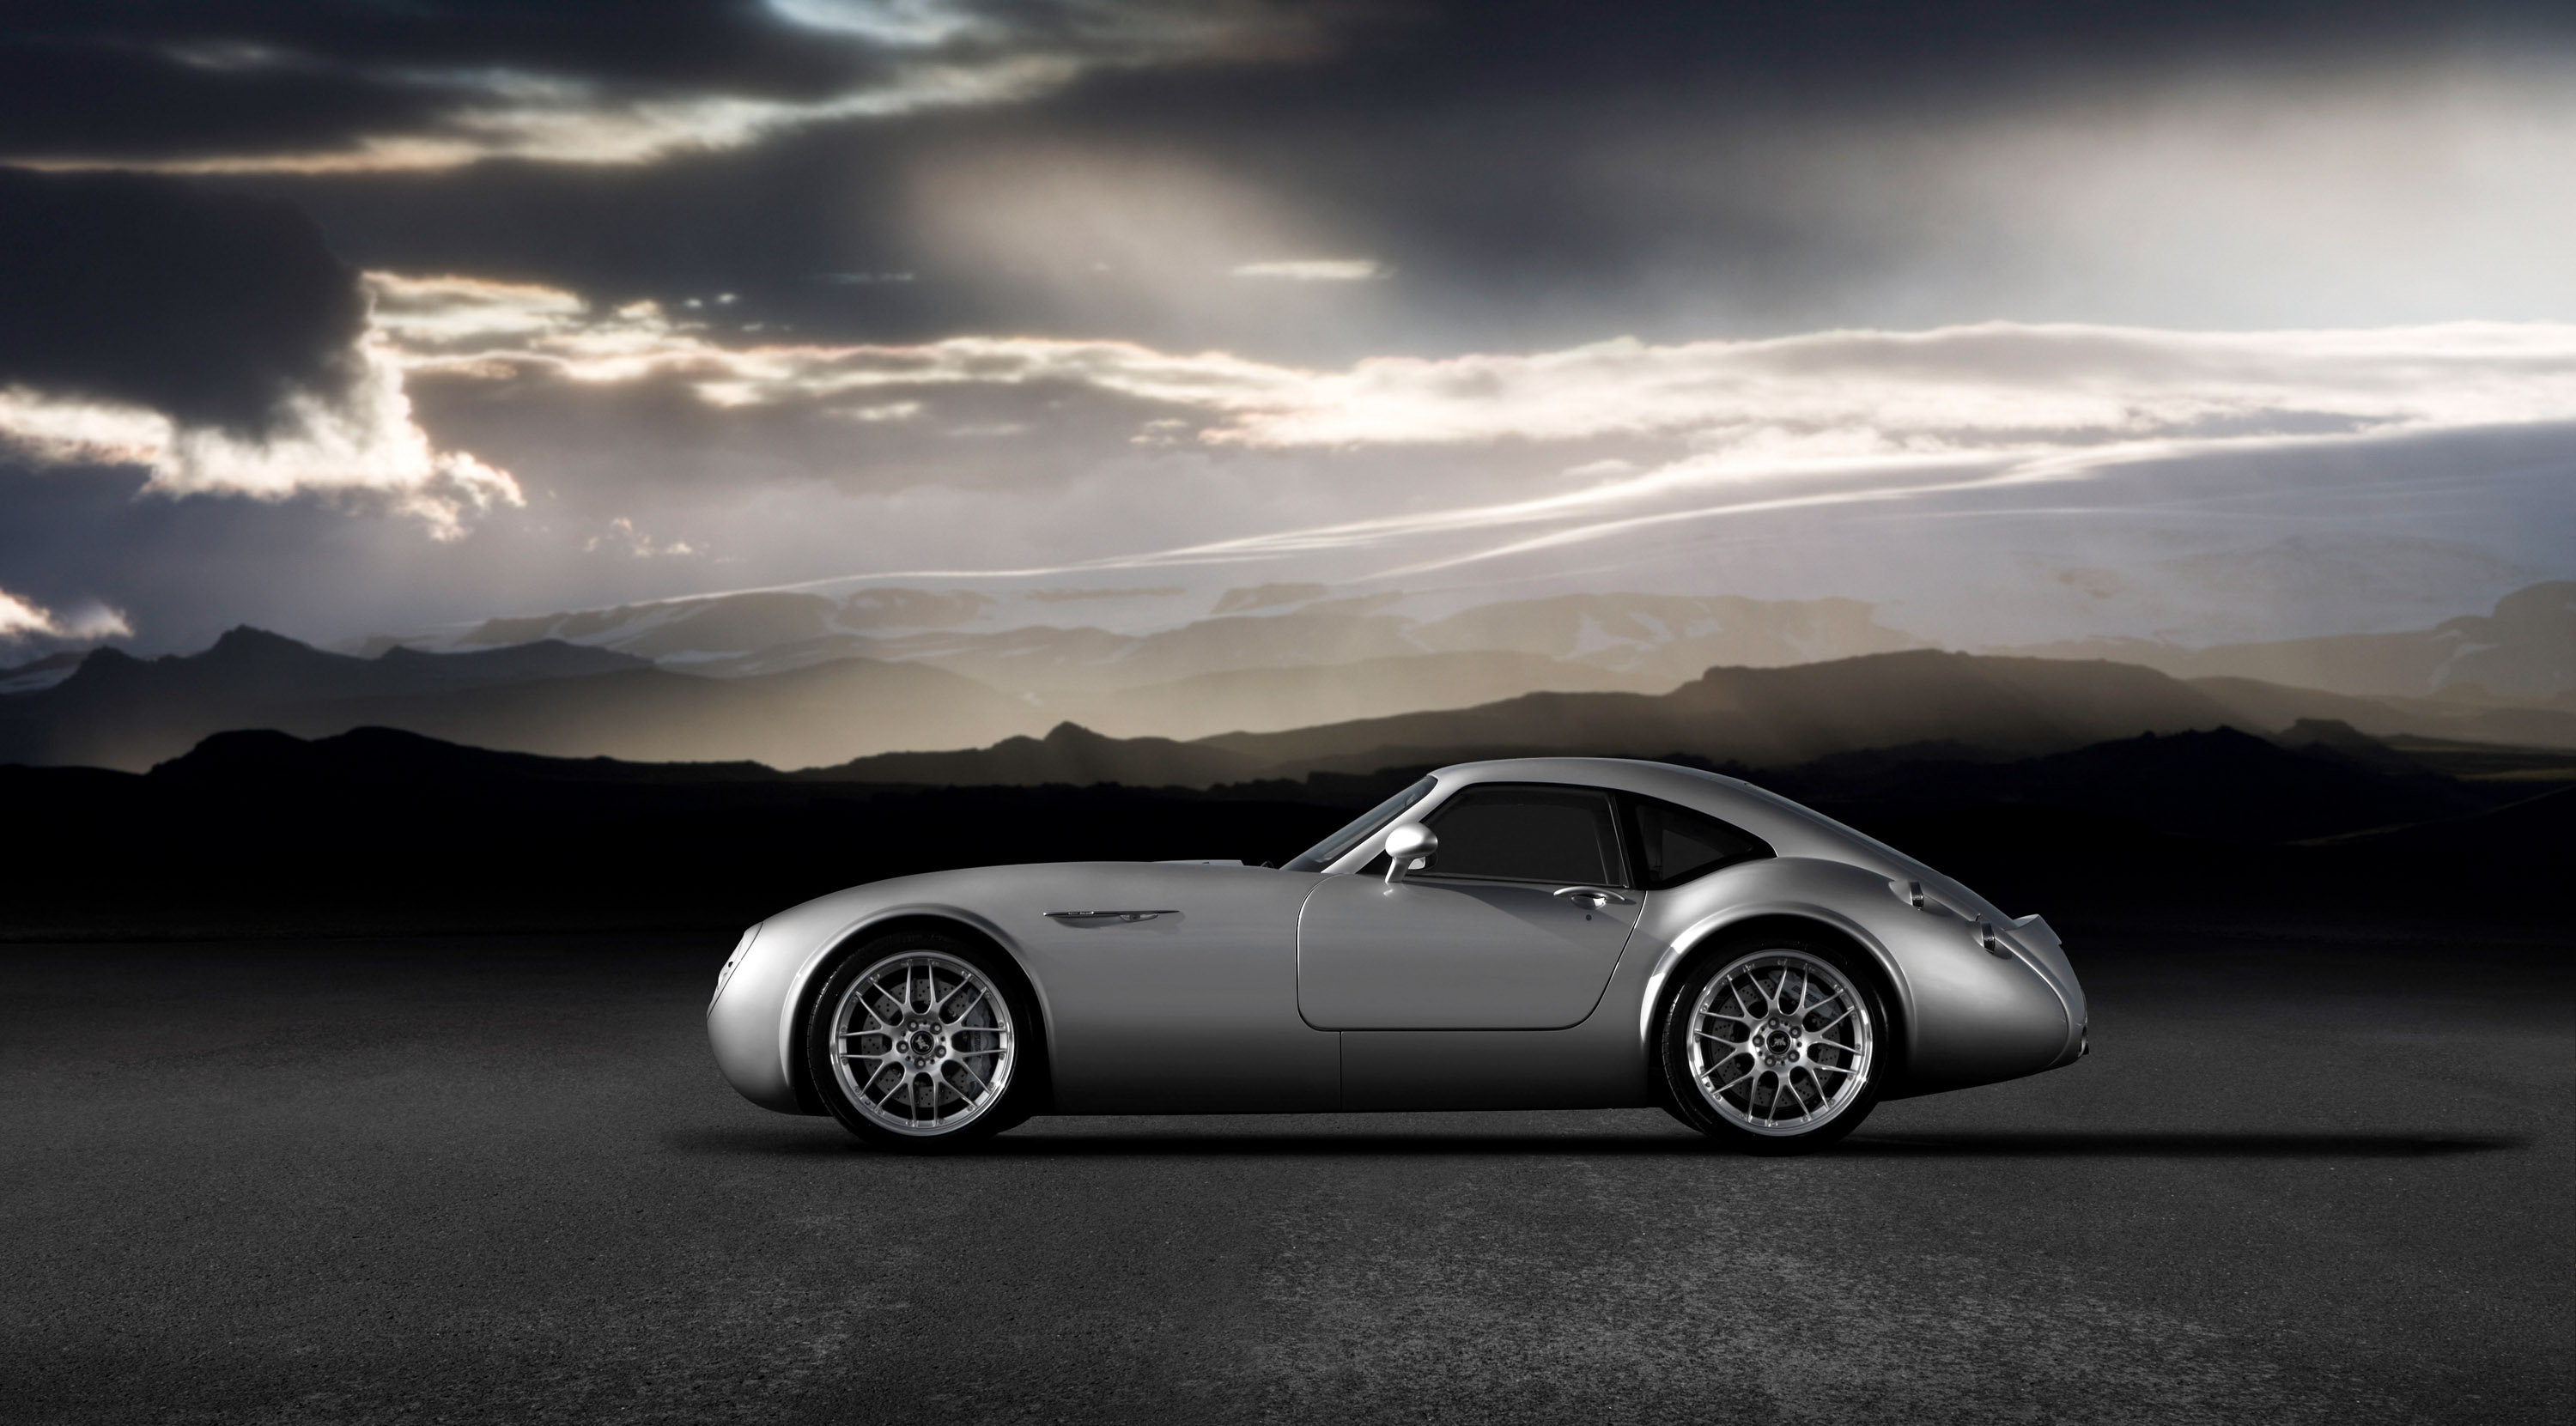 3000x1661 - Wiesmann GT MF4 Wallpapers 34